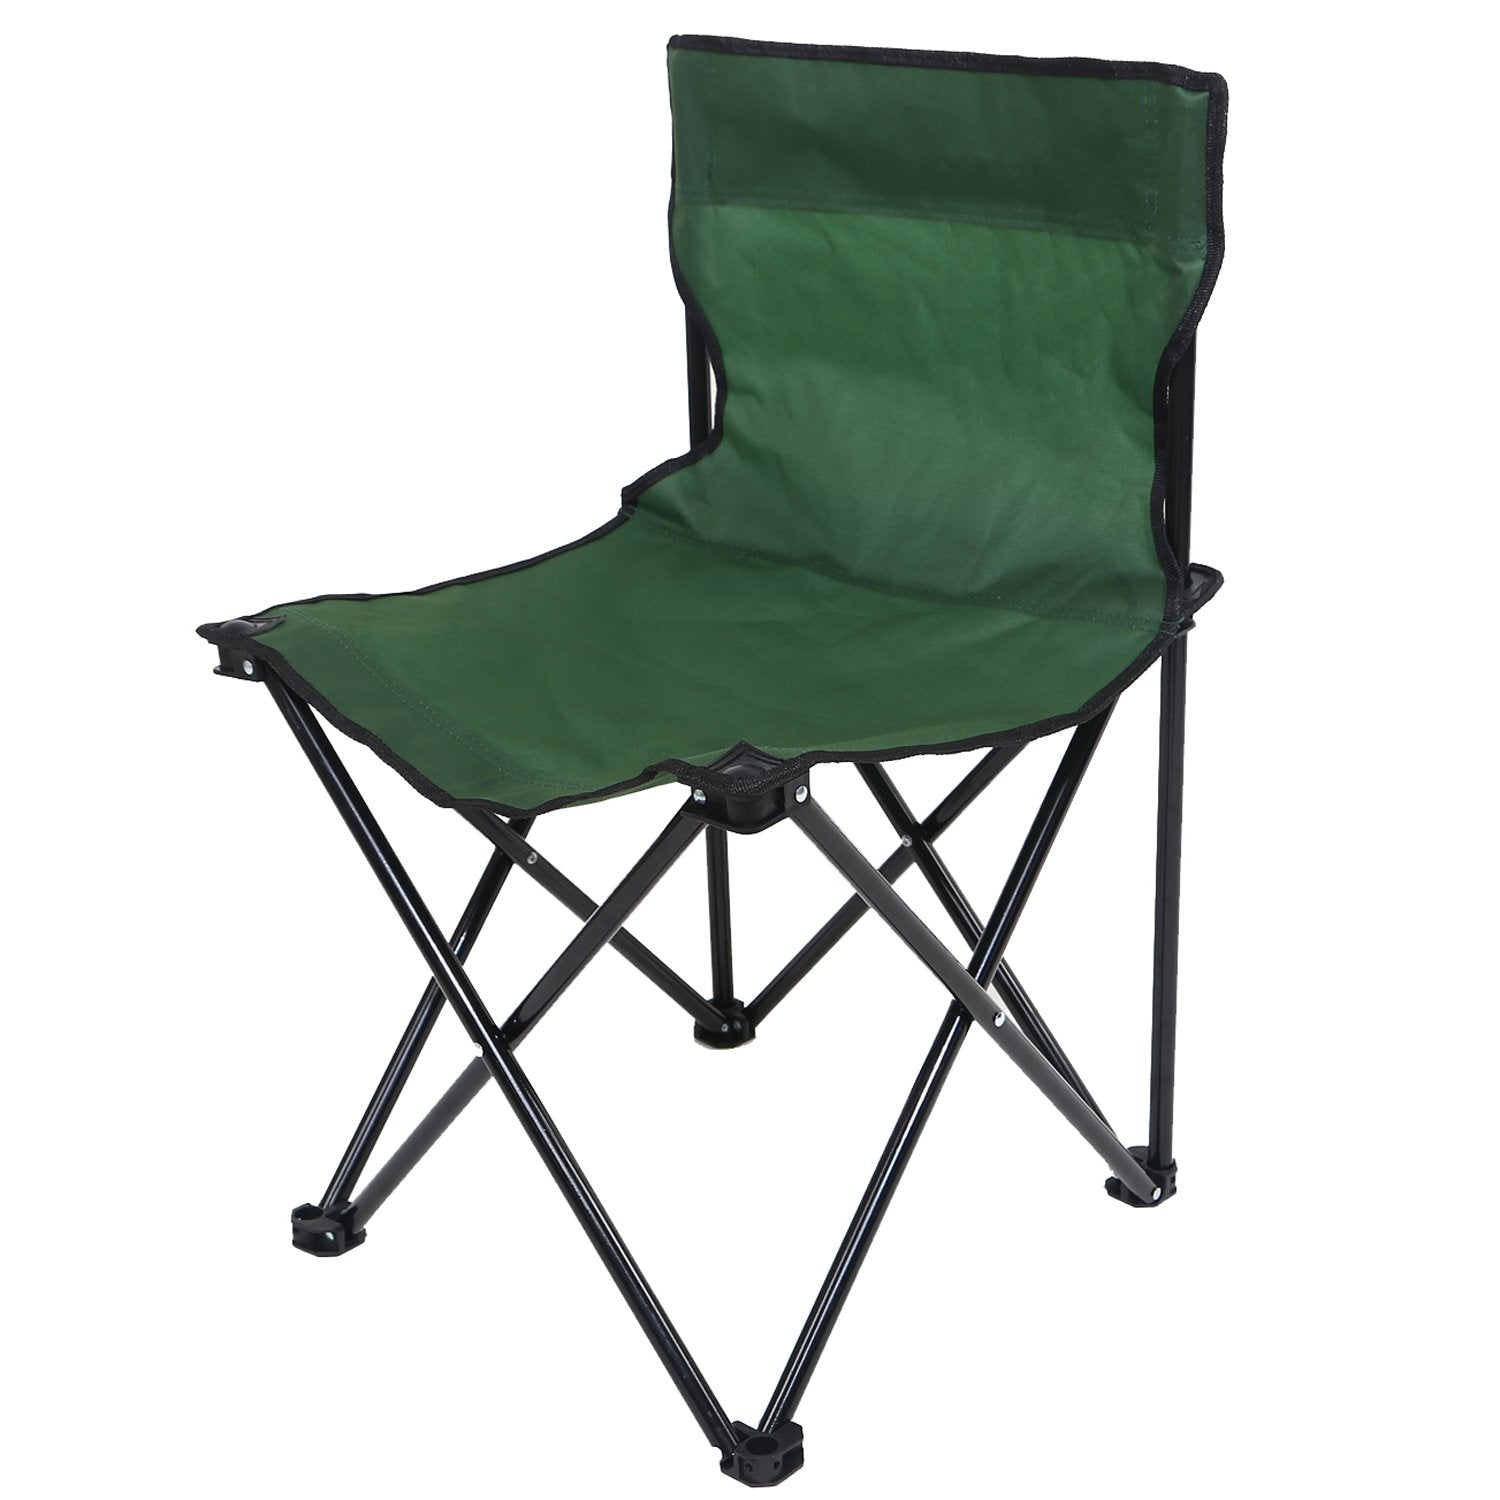 Jamohom Portable Folding Camping Chair Outdoor Heavy Duty